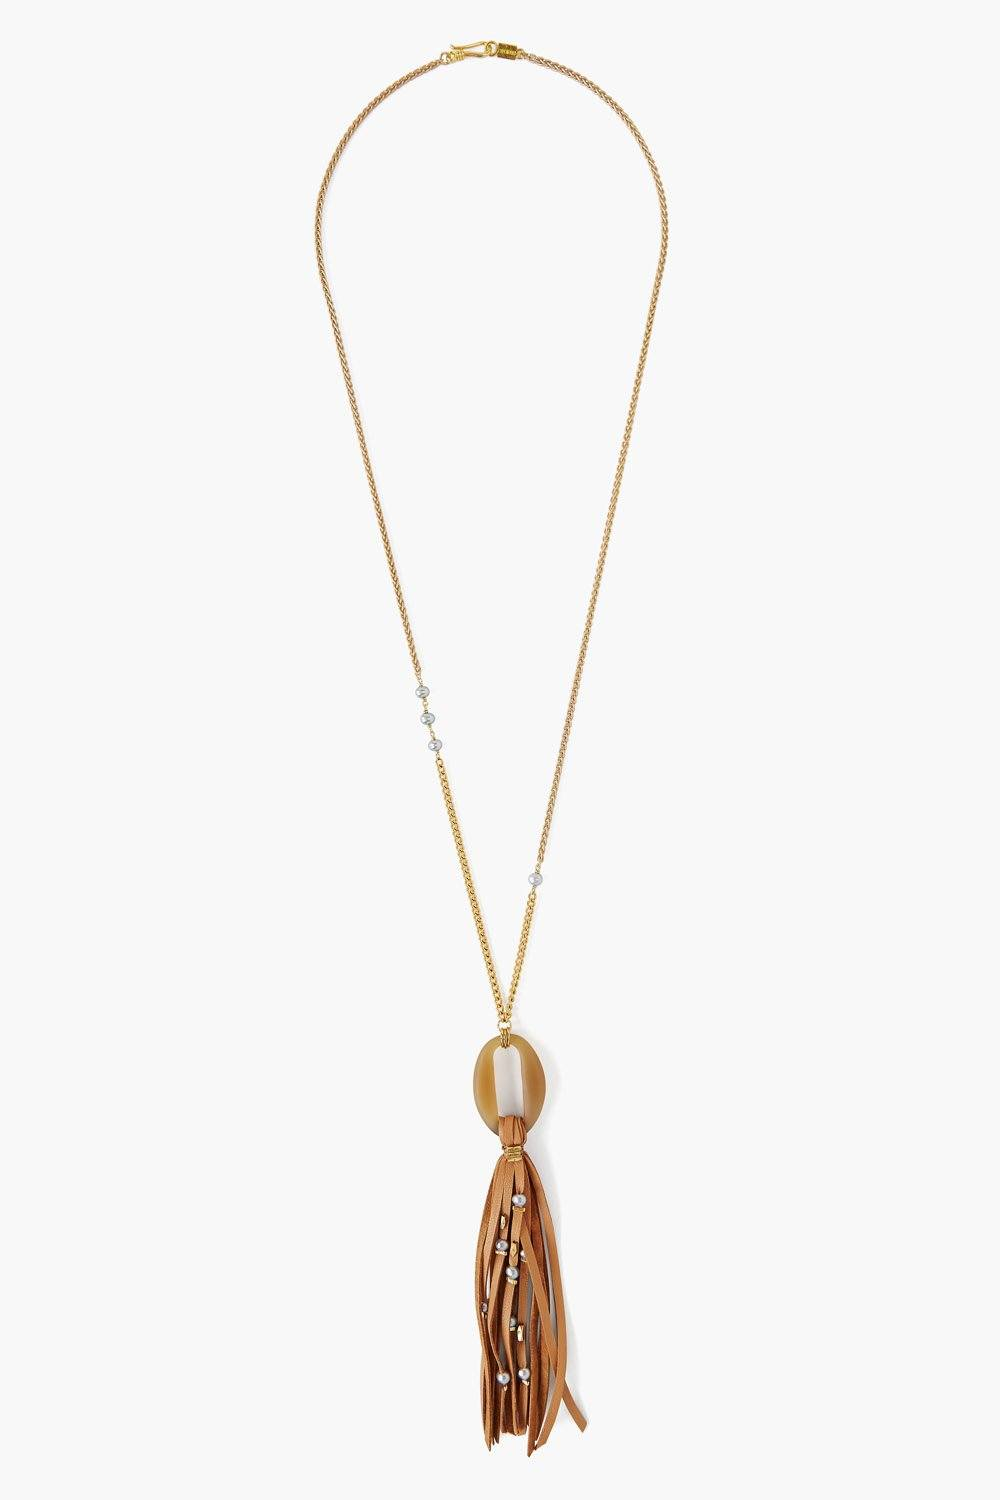 Beige Leather Tassel Necklace